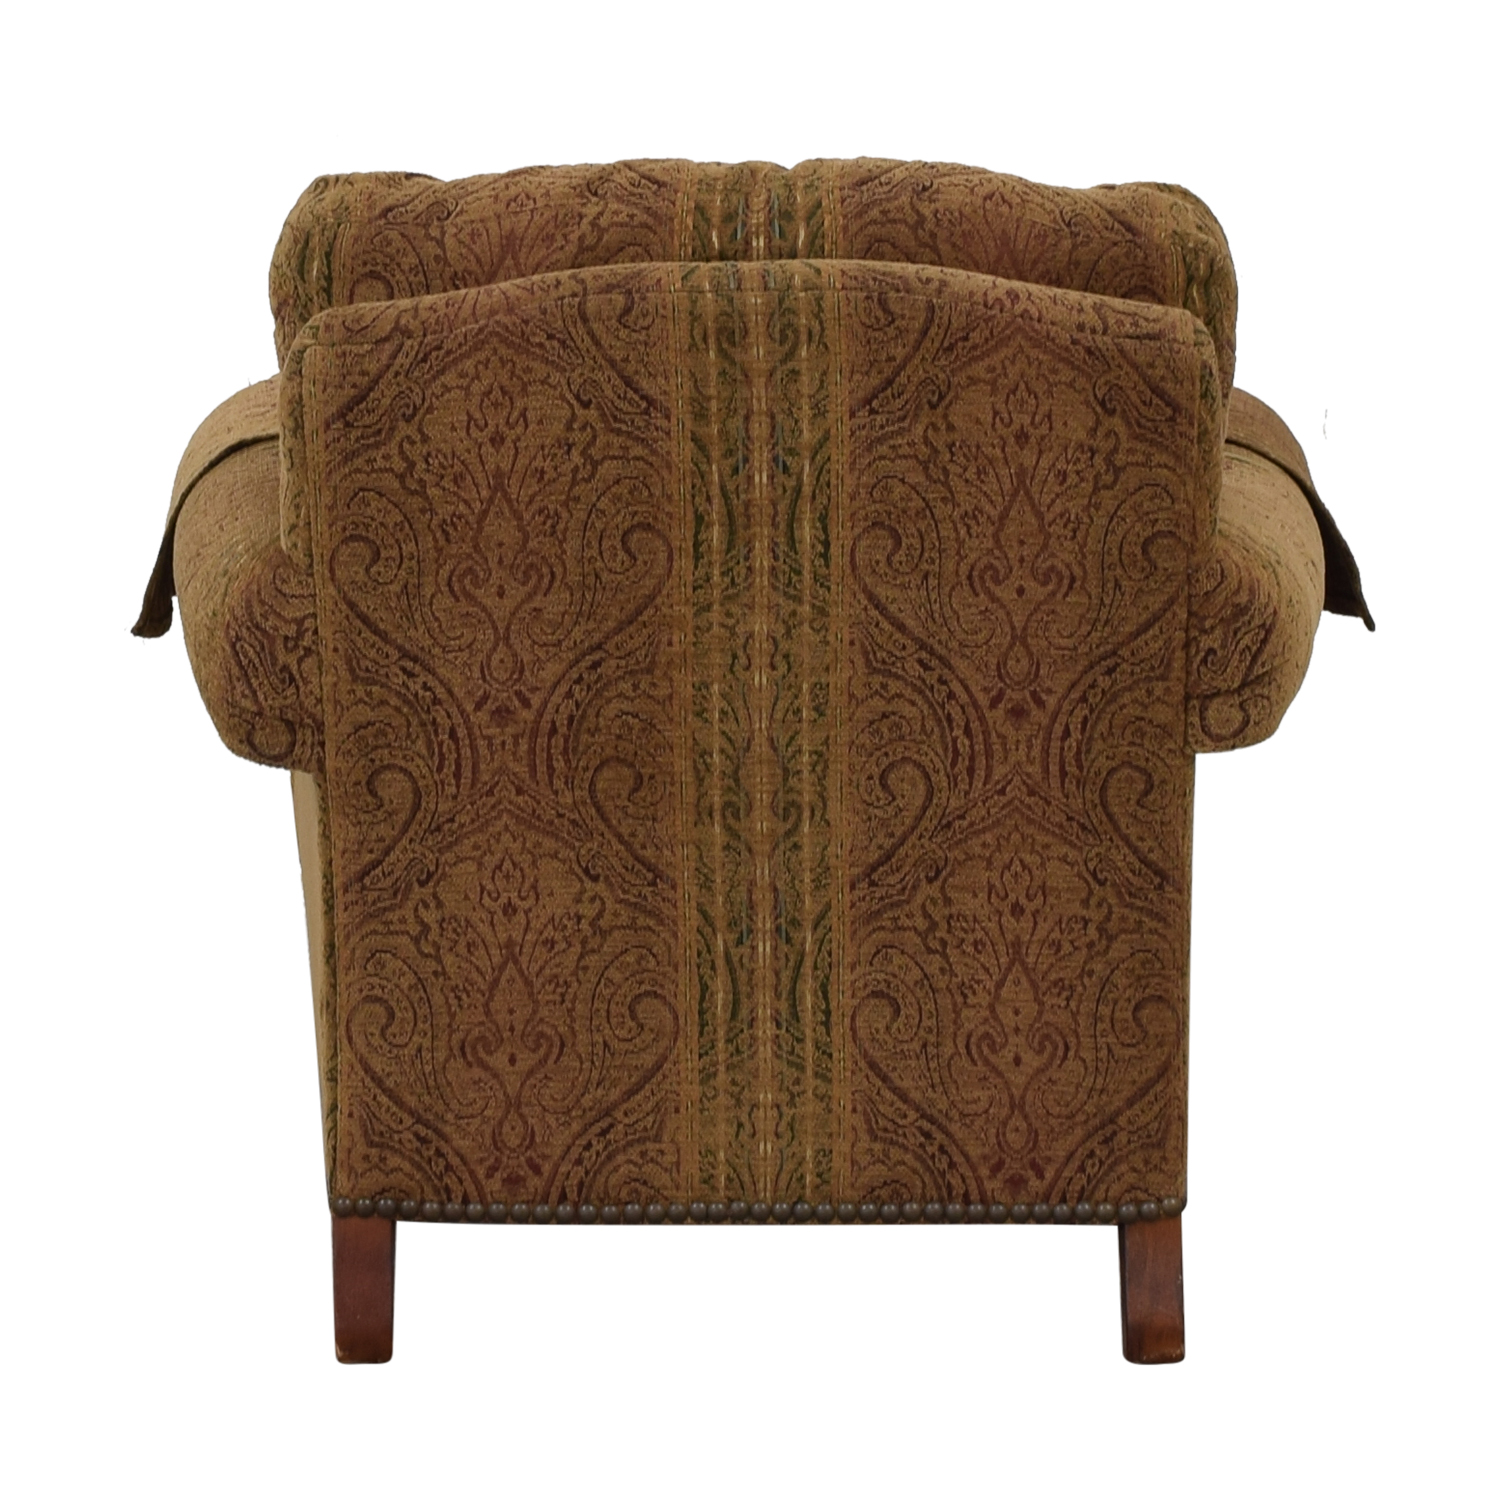 buy Lillian August Upholstered Chair with Ottoman Lillian August